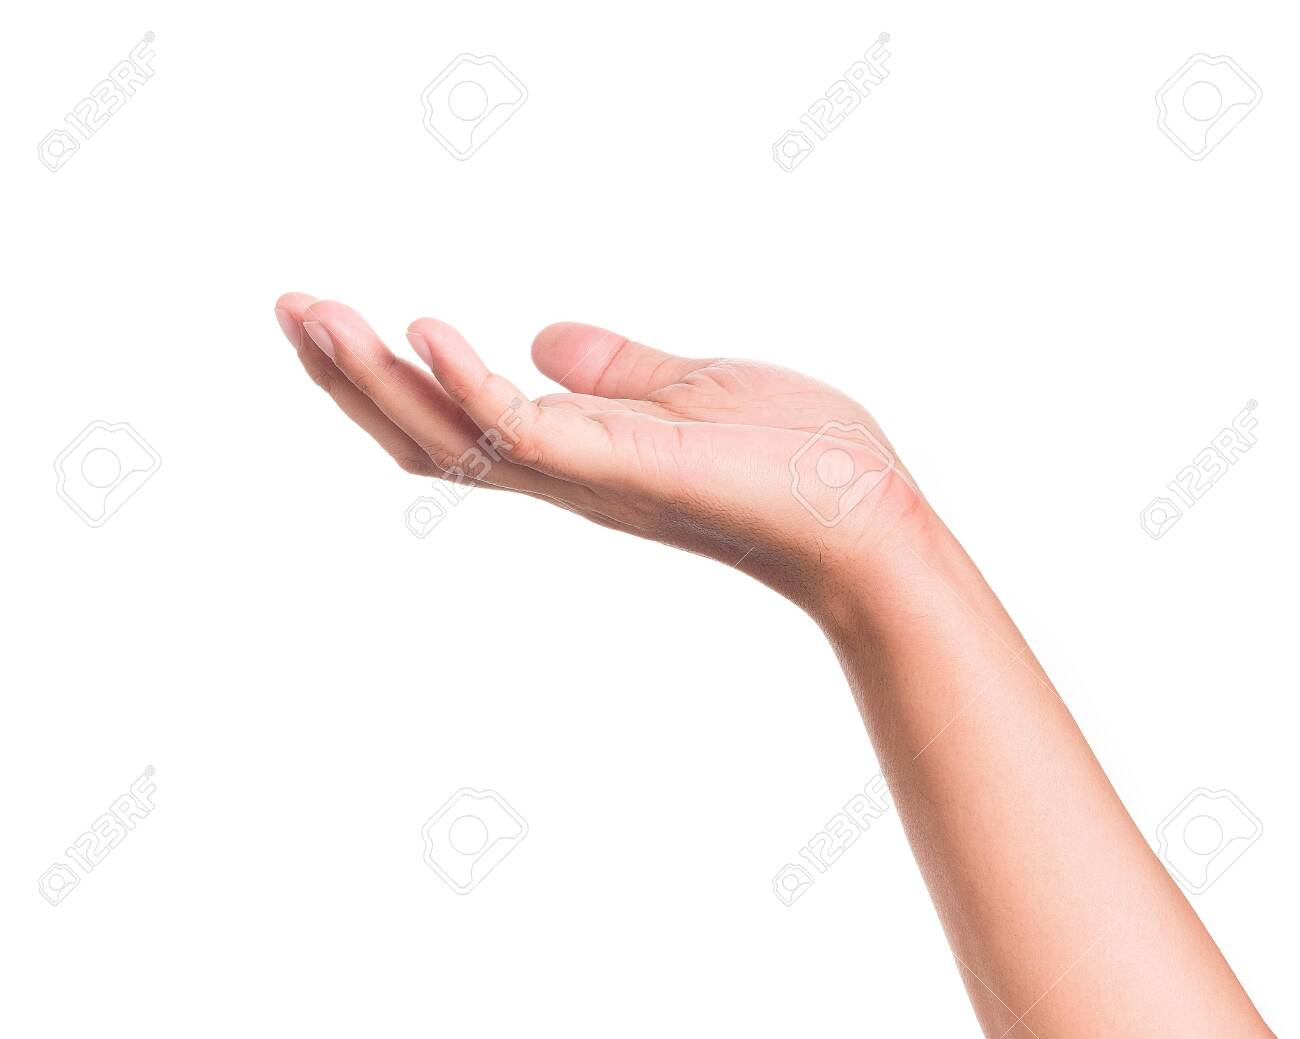 Hands gesture holding something on isolated background. - 131856024